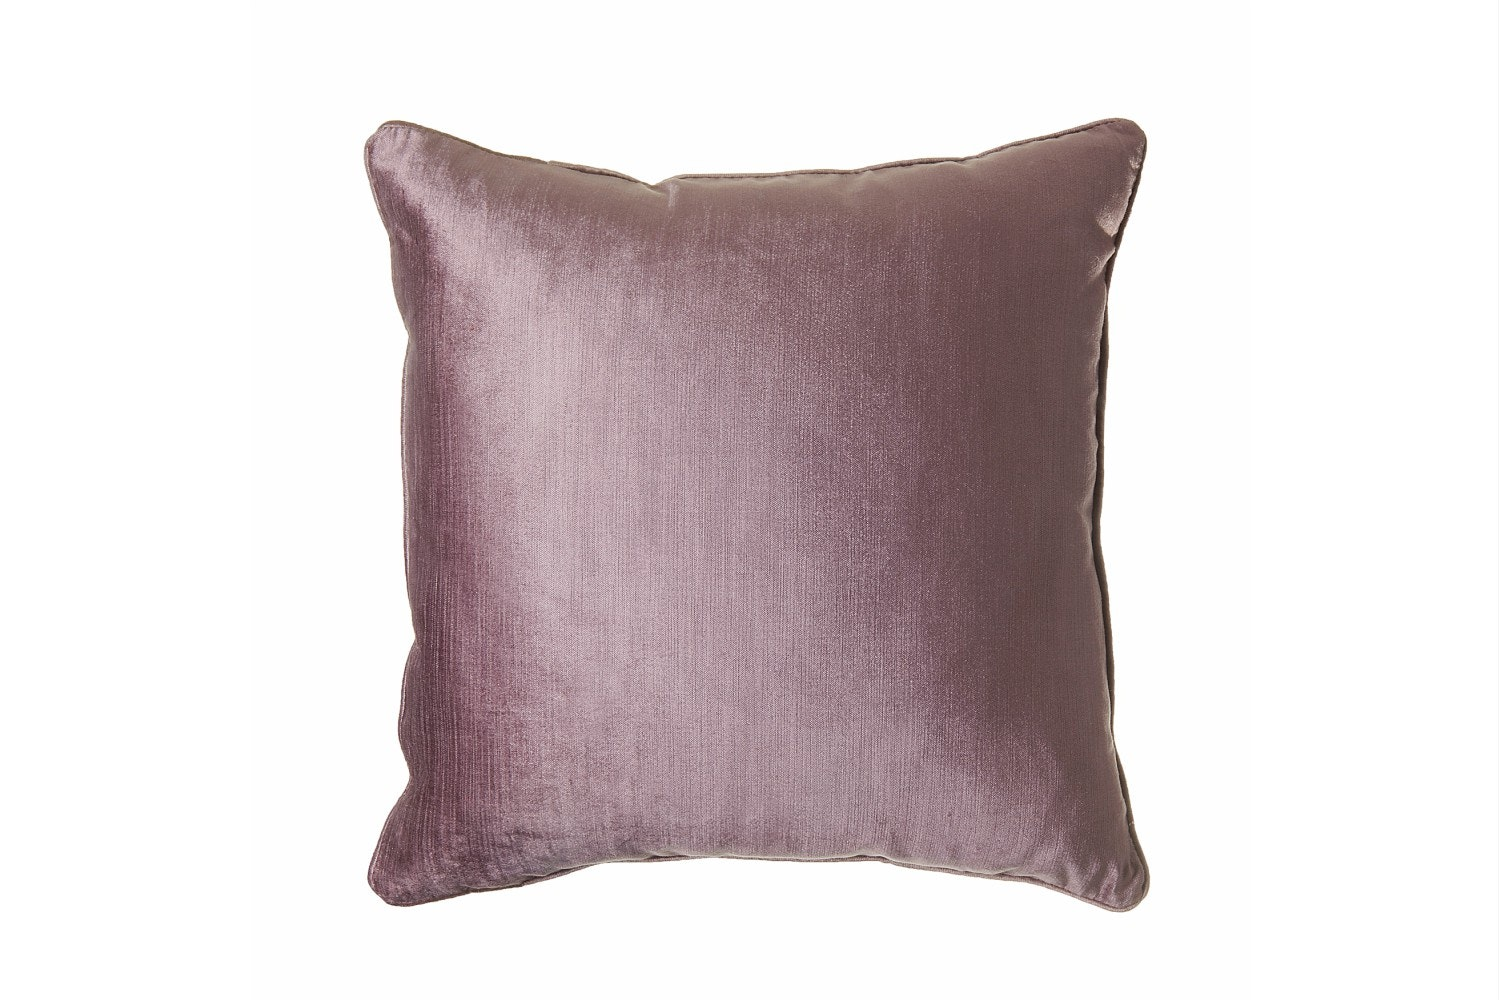 Scatterbox Velvet Sheen Duo Heather/Ivory Cushion | 45x45cm